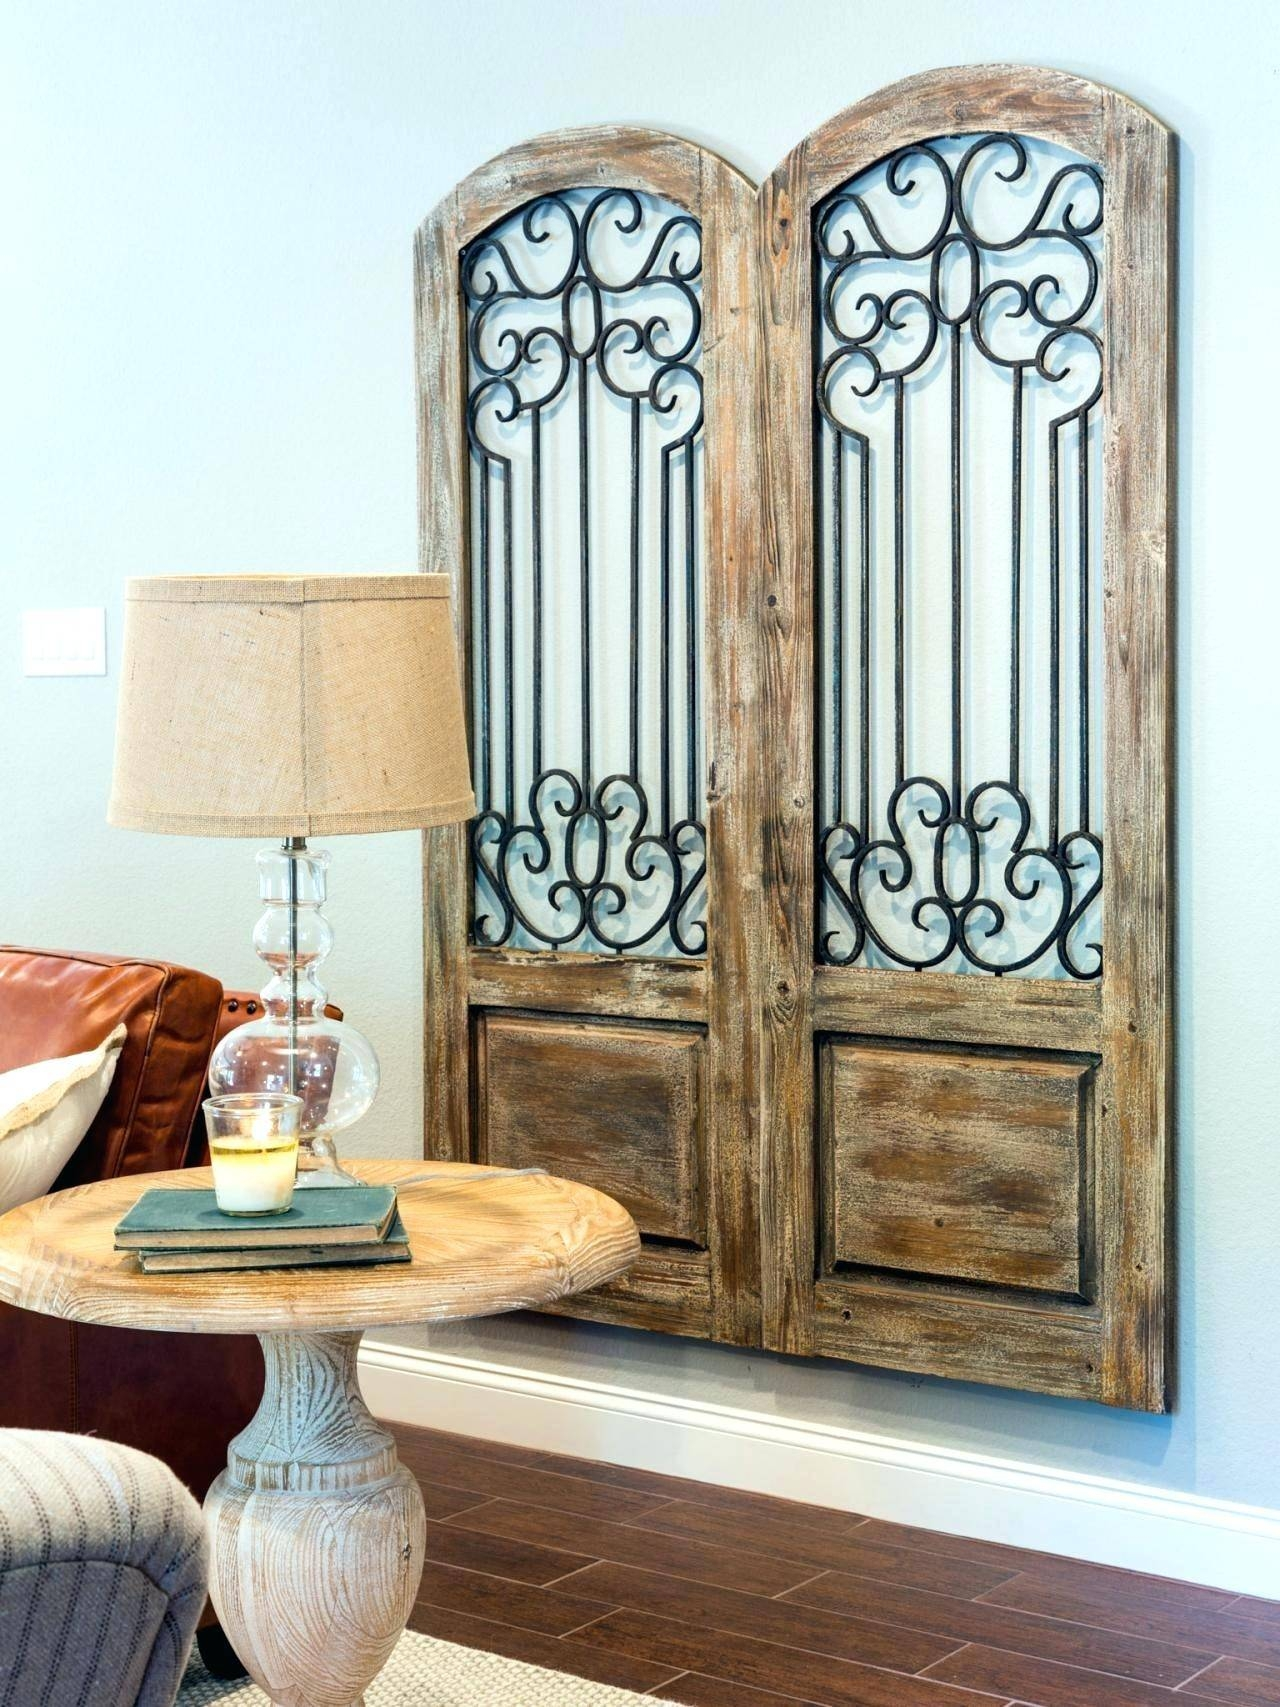 Articles With Faux Wrought Iron Wall Art For Under $5 Tag Regarding Most Current Faux Wrought Iron Wall Art (View 3 of 30)